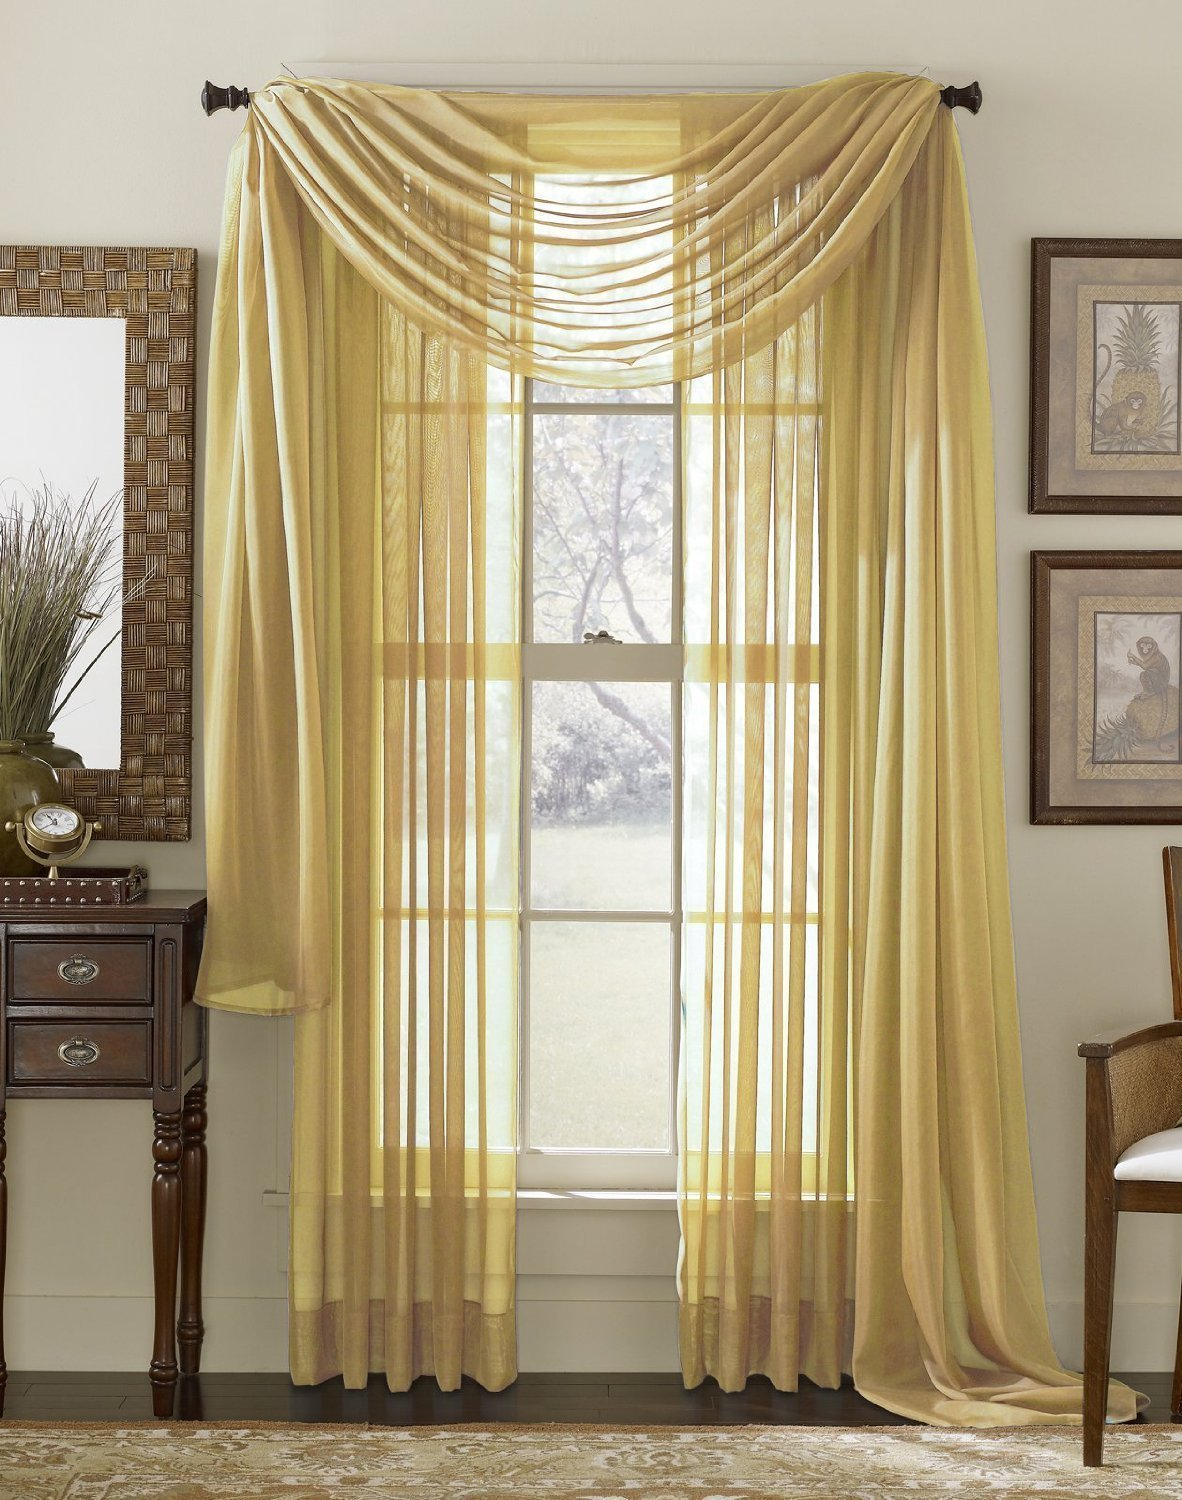 LuxuryDiscounts 2 Piece Solid Gold Elegant Sheer Curtains Fully Stitched Panels Window... by